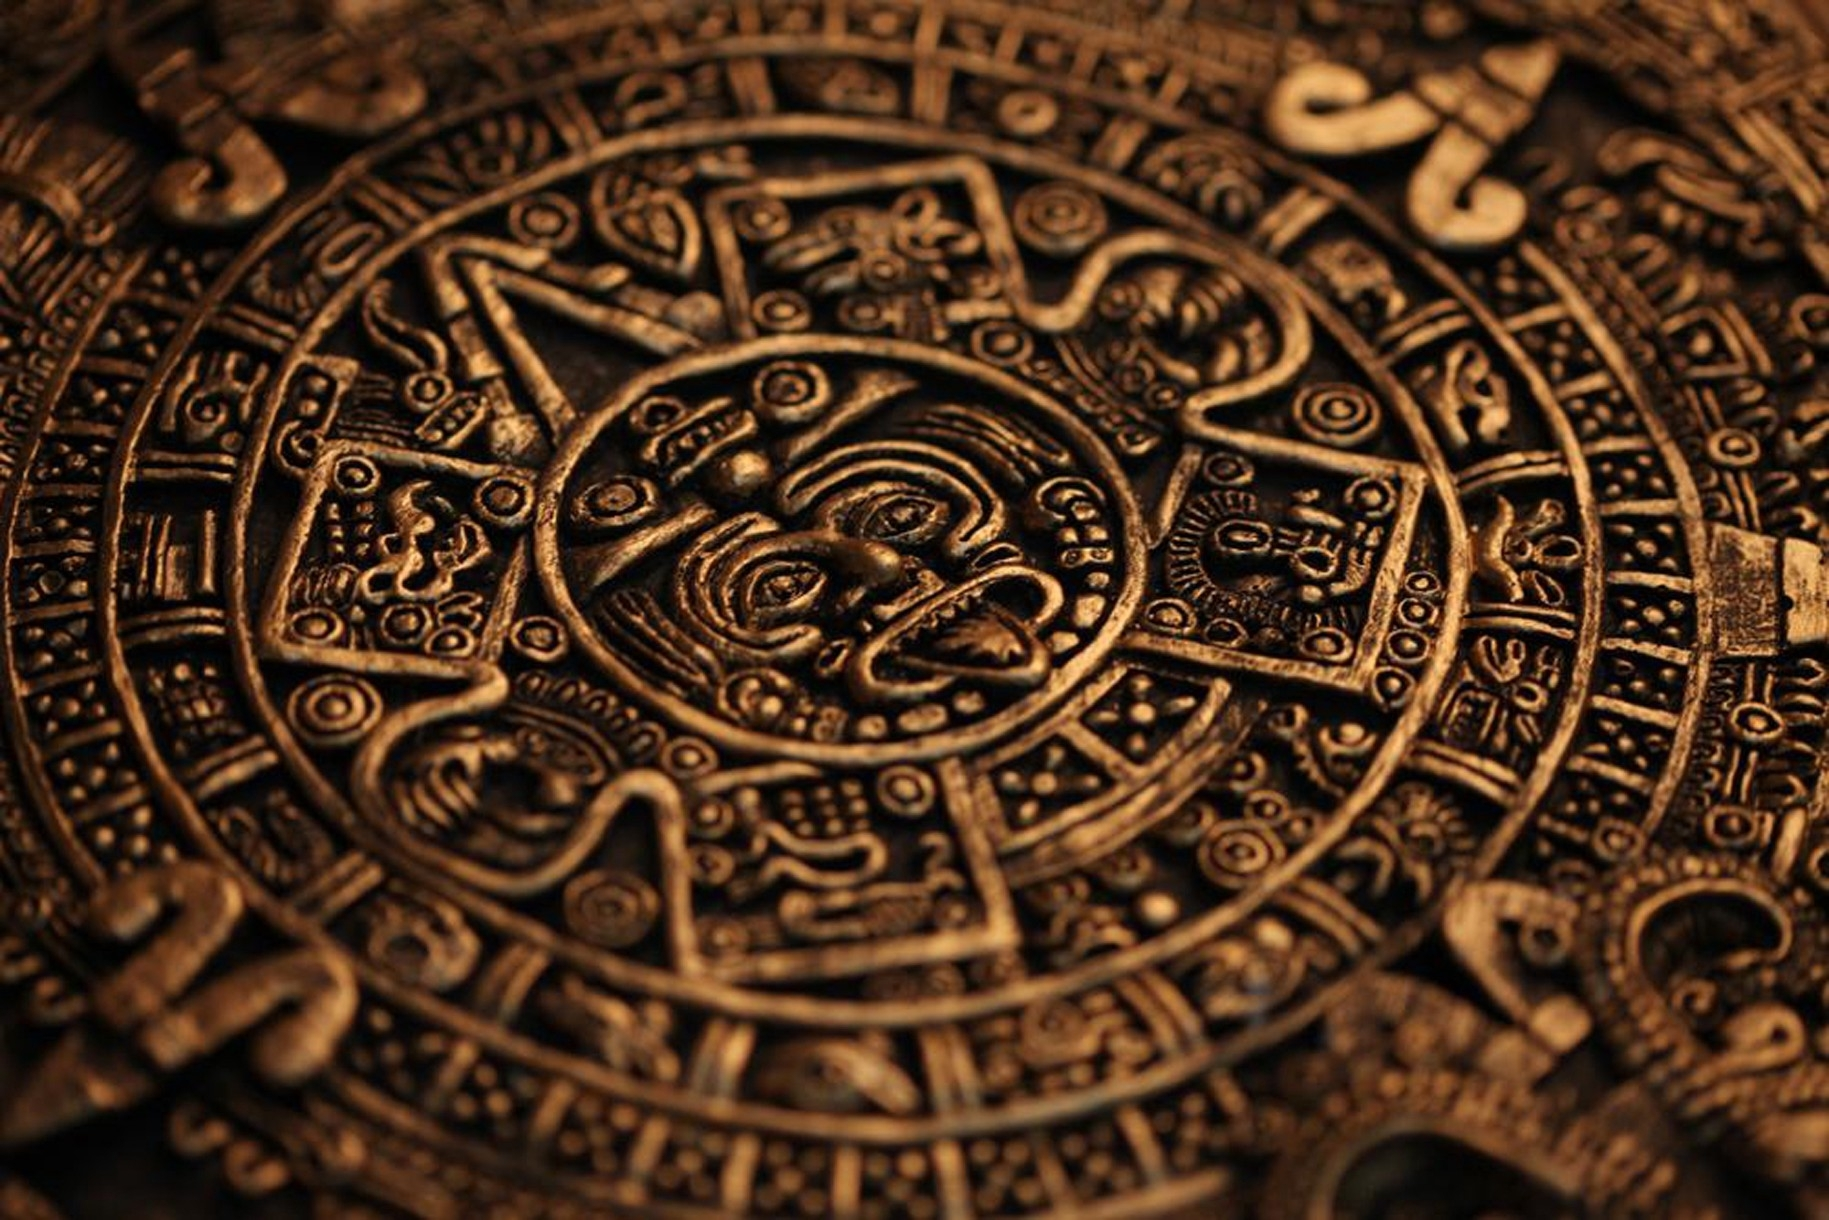 24 May 2017 Is More Significant Than 21 December 2012 Mayan Calendar in The End Of The Mayan Calendar